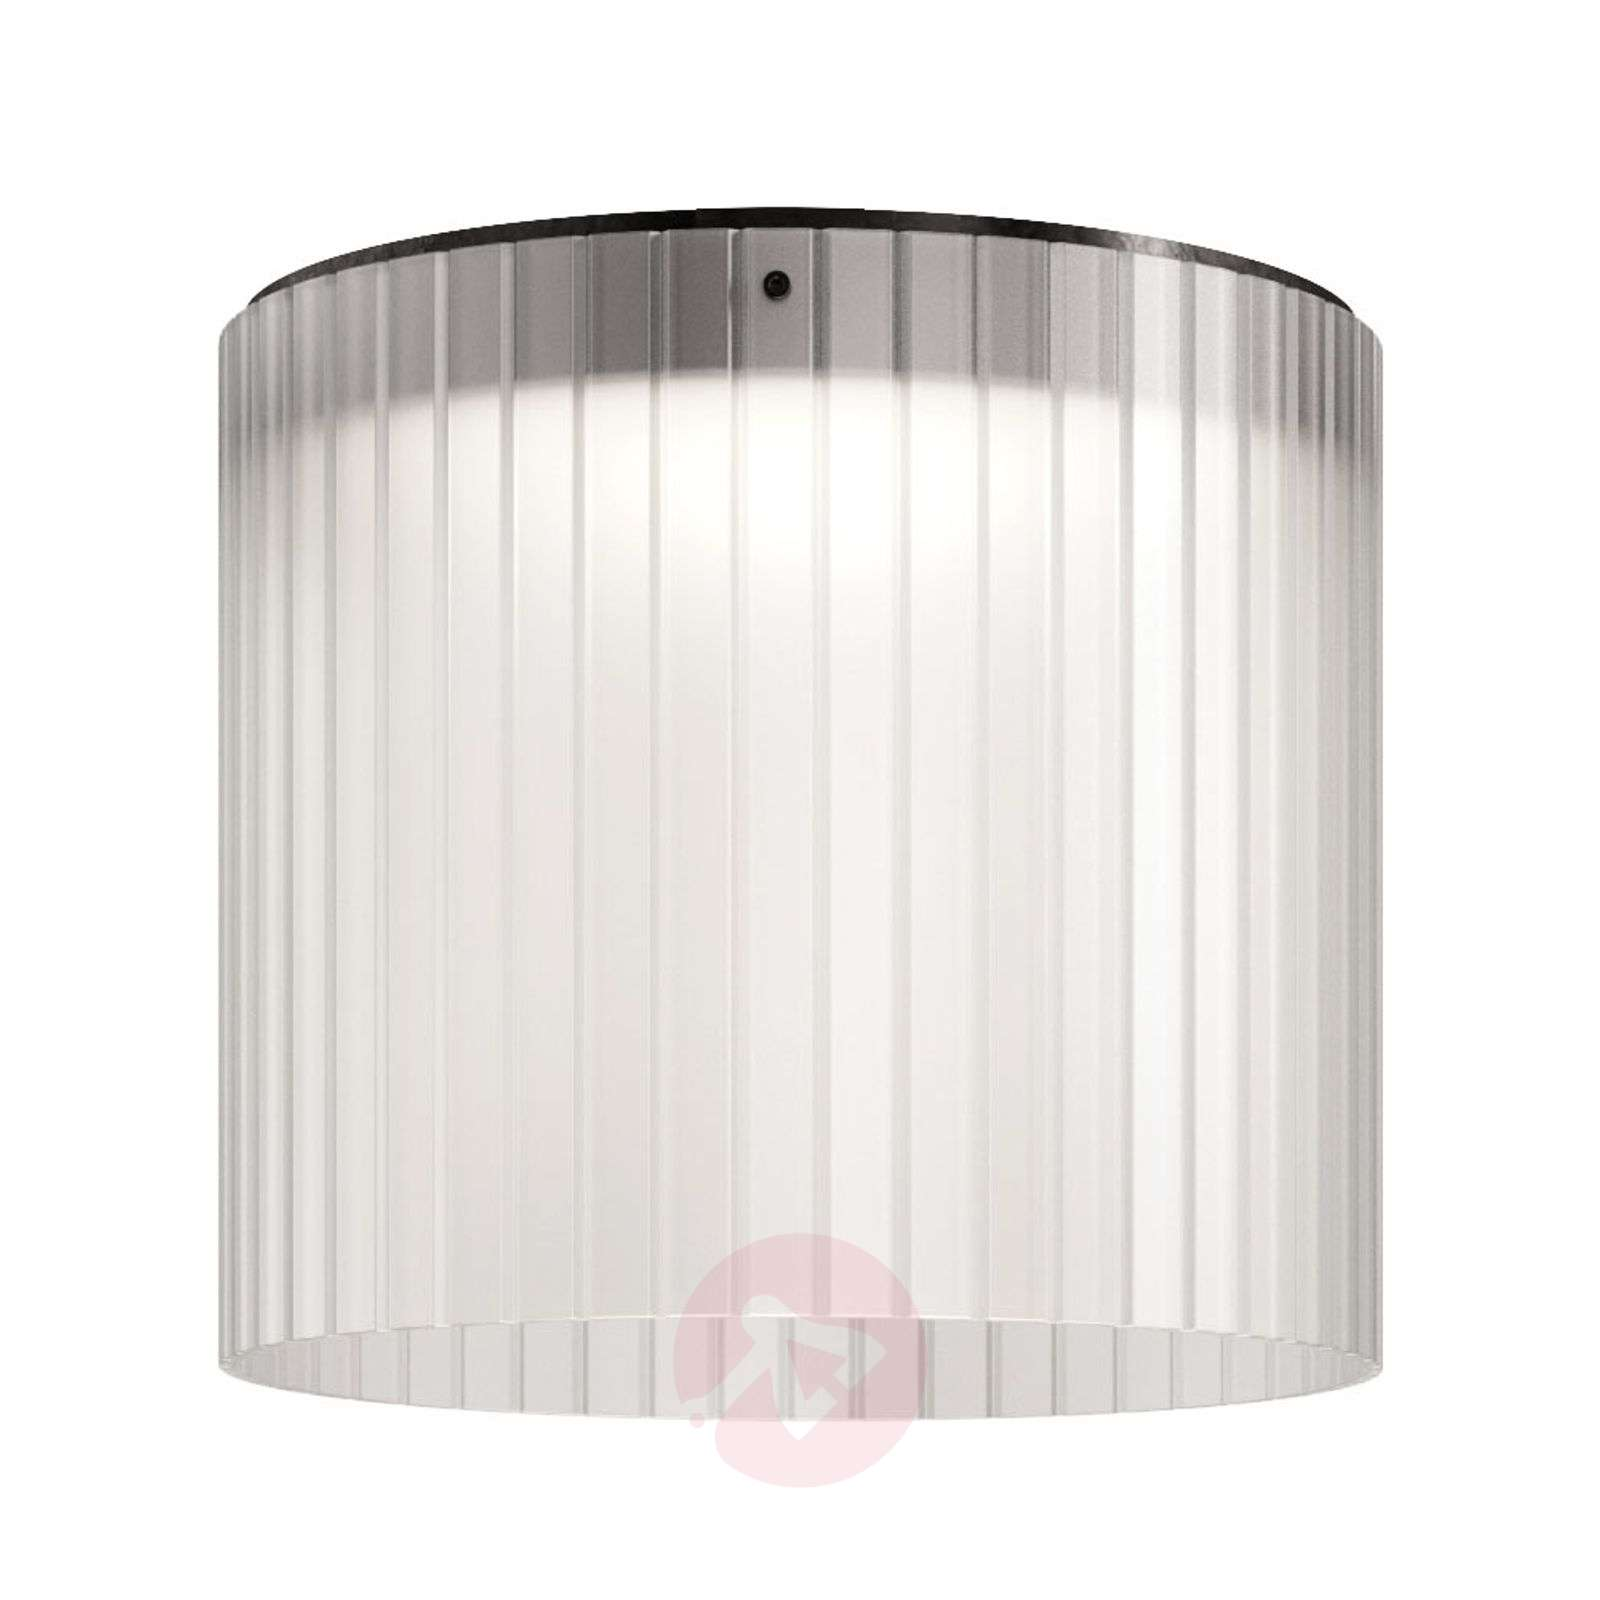 Kundalini Giass LED ceiling light, Ø 40 cm-5520223X-01